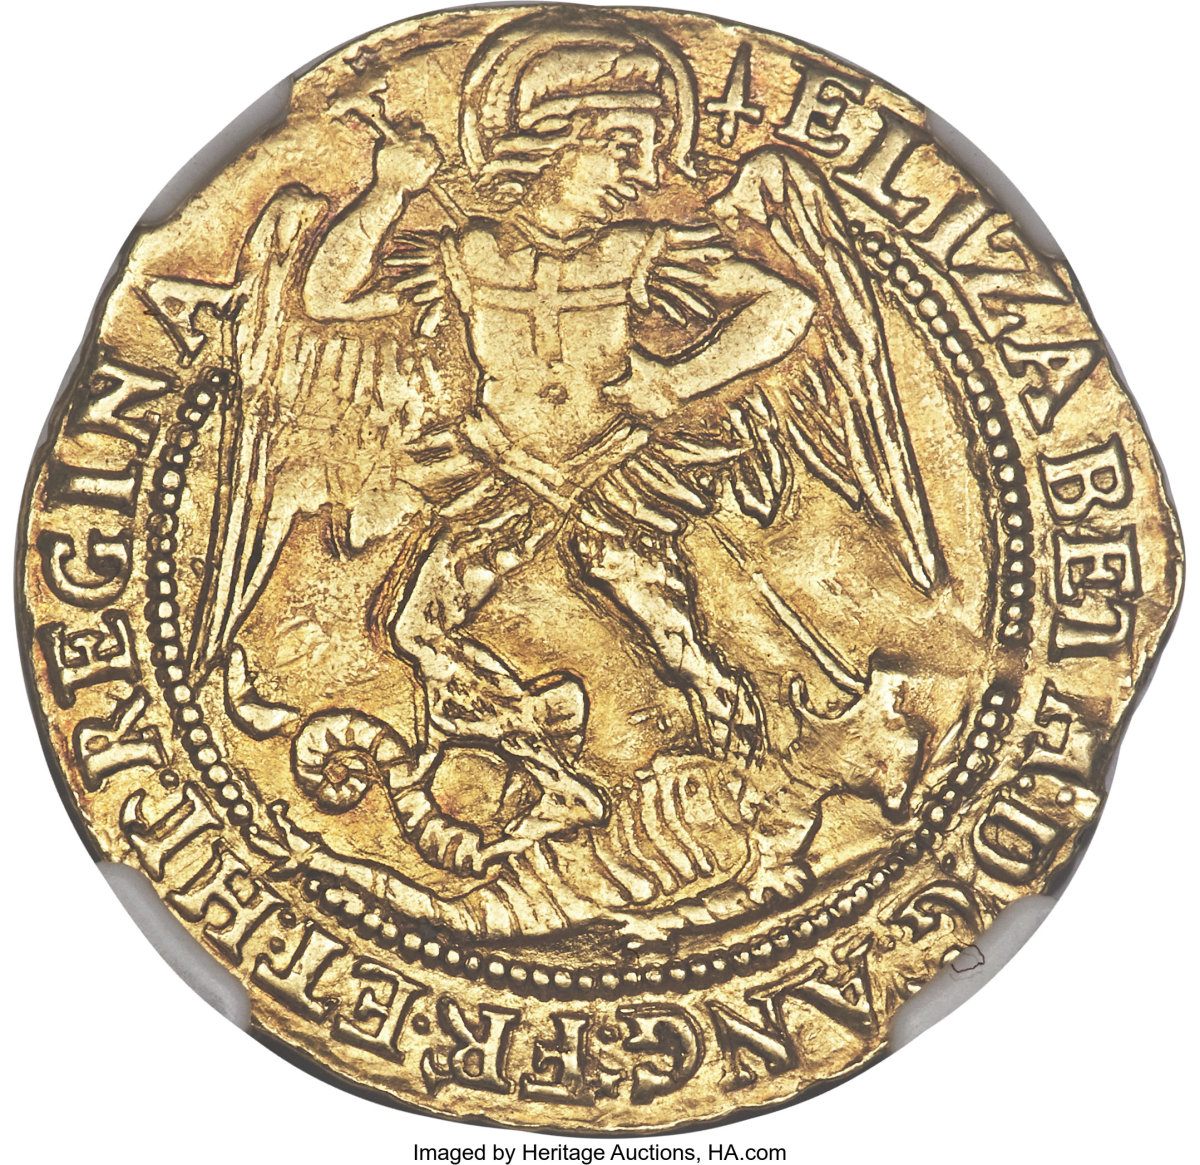 Top English coin: superbly engraved, scarce fifth issue gold angel of Elizabeth I (S-2525) that took $7,200 in AU55 NGC grade. Images courtesy & © Heritage Auctions